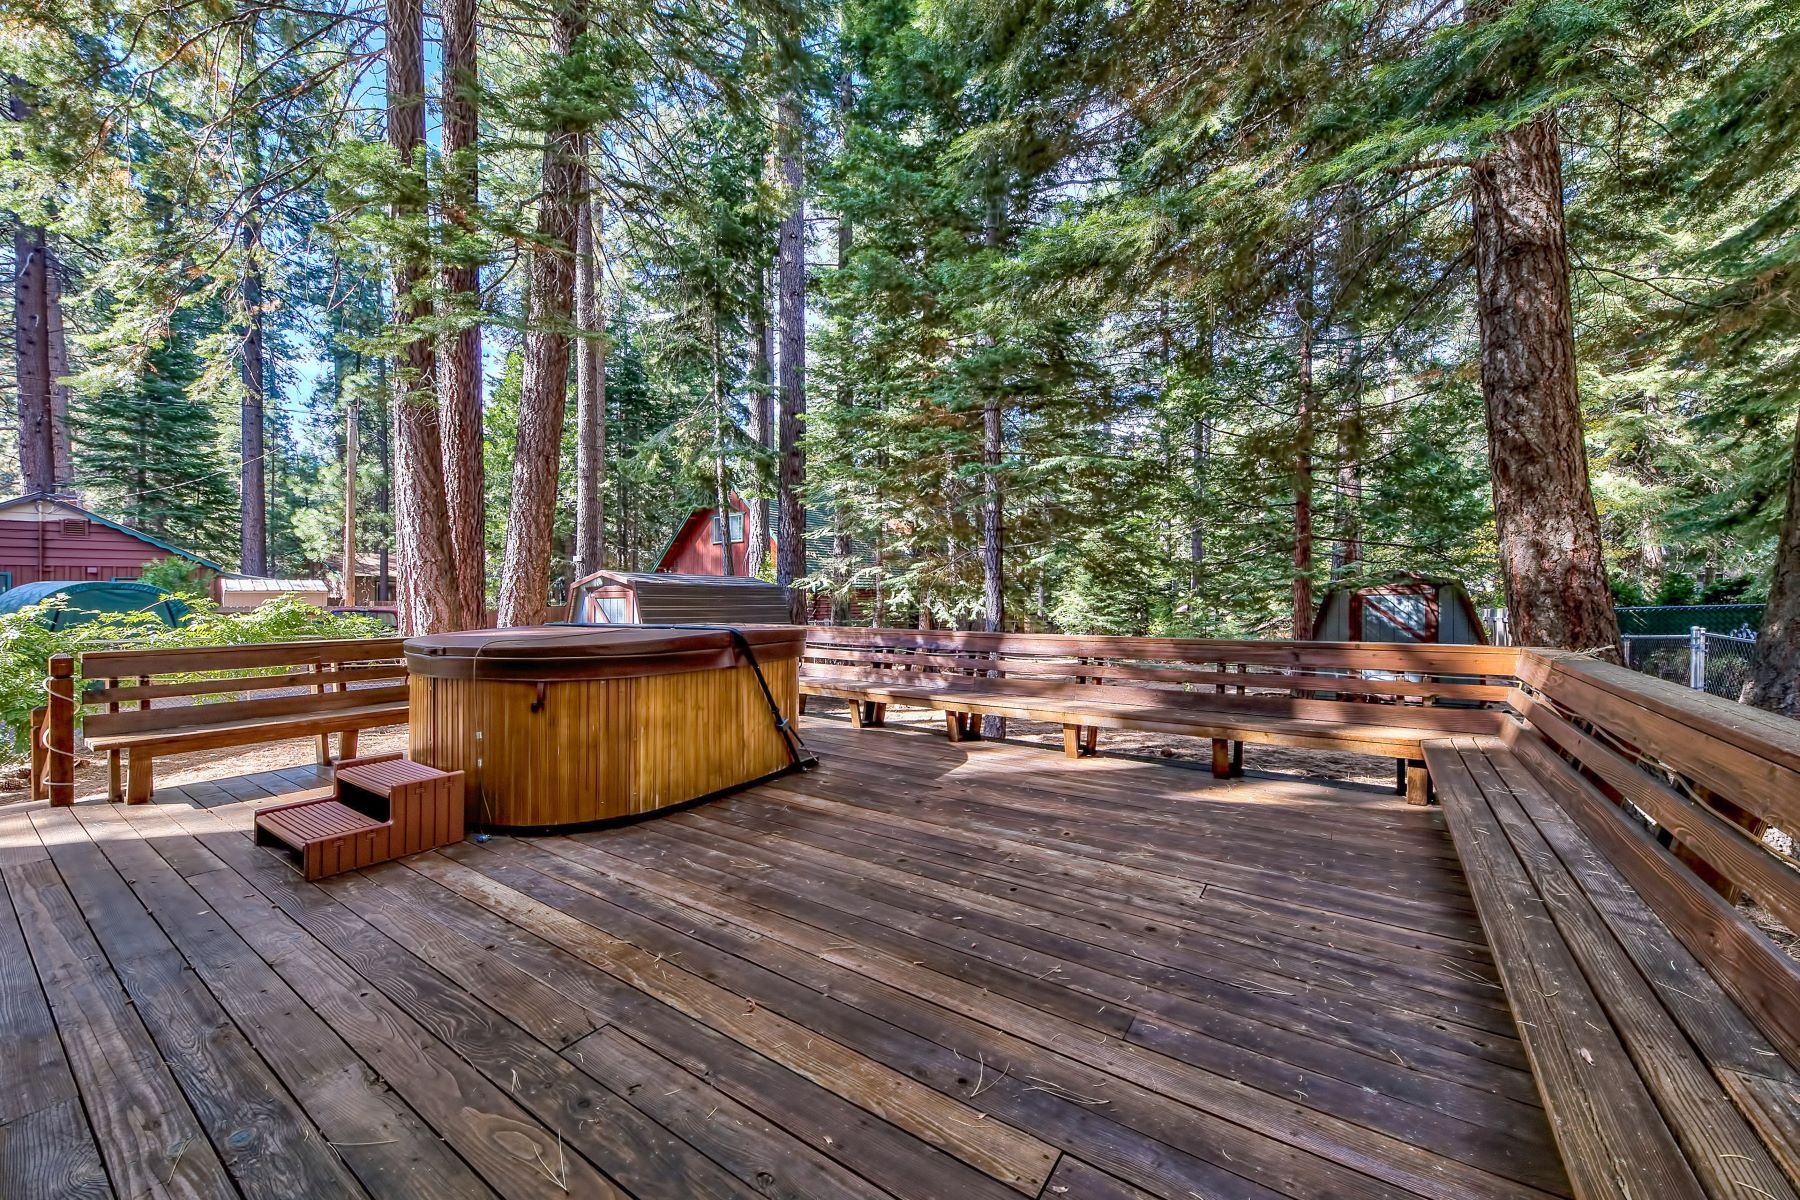 Additional photo for property listing at 1875 13th St,South Lake Tahoe, CA  96150 1875 13th Street South Lake Tahoe, California 91711 United States